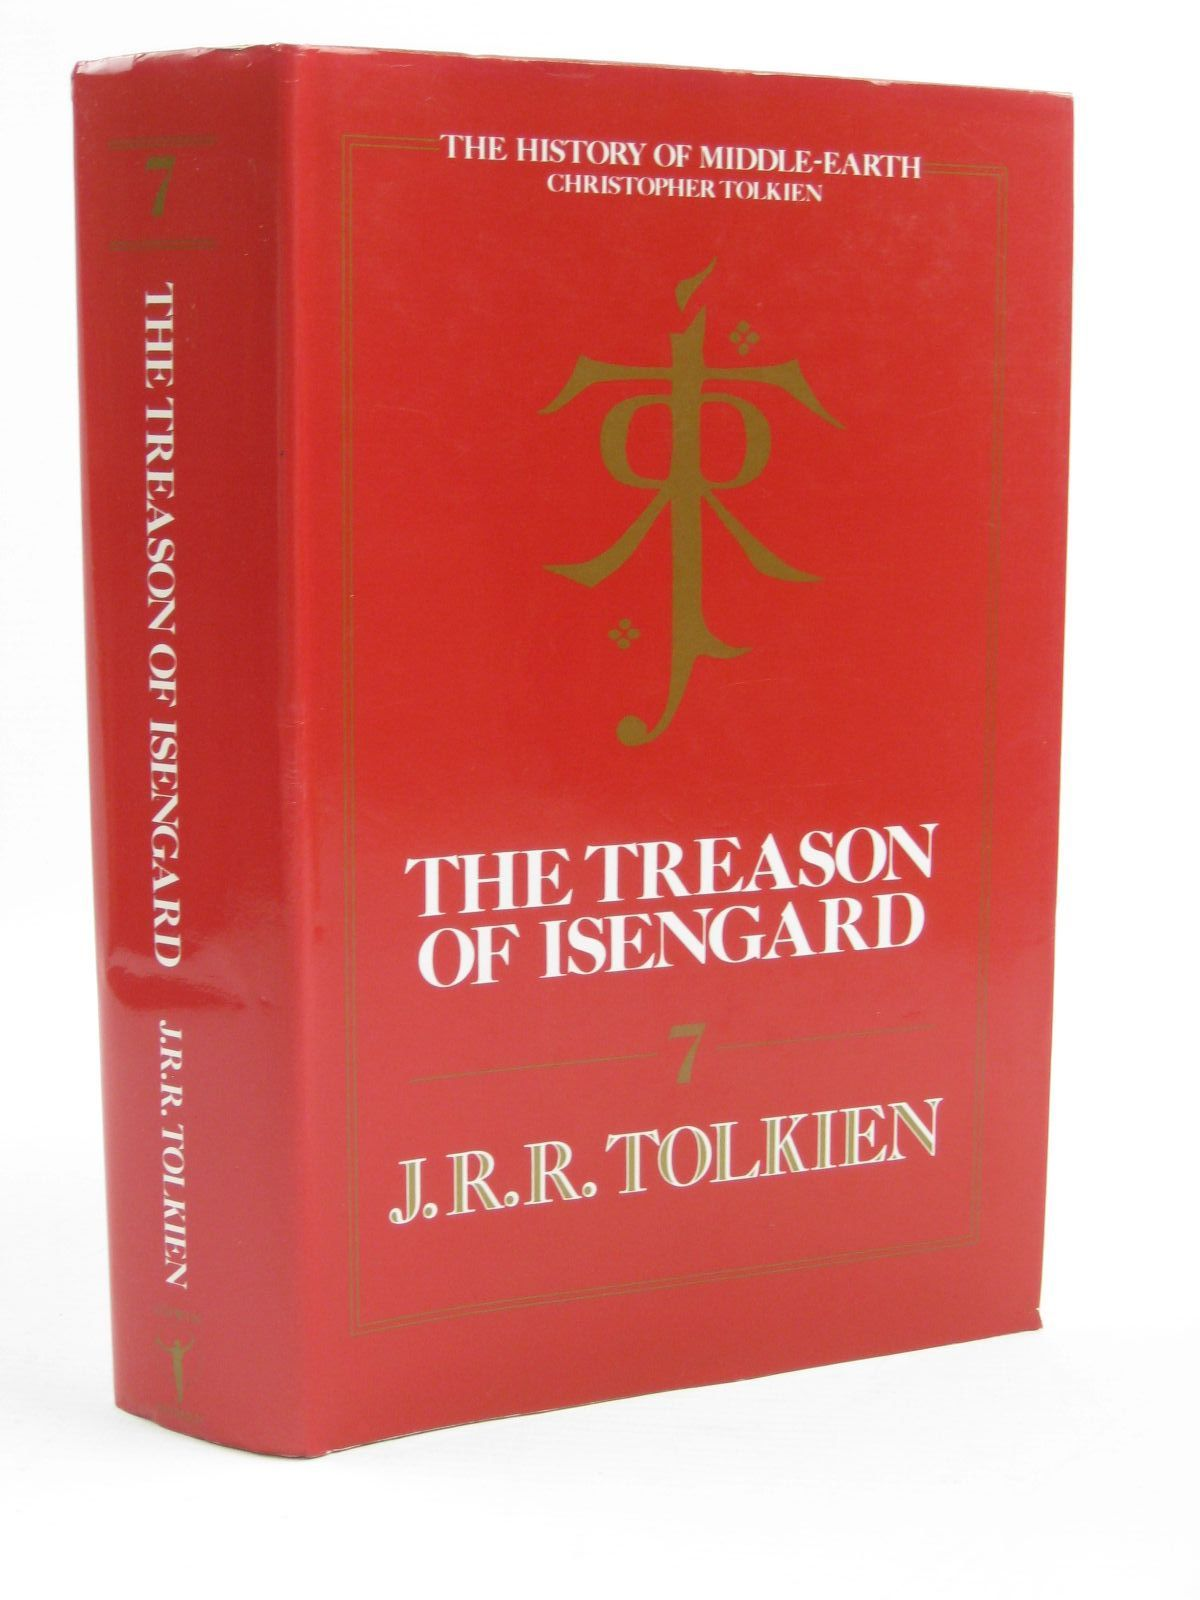 Photo of THE TREASON OF ISENGARD written by Tolkien, J.R.R. published by Unwin Hyman Ltd. (STOCK CODE: 1507455)  for sale by Stella & Rose's Books